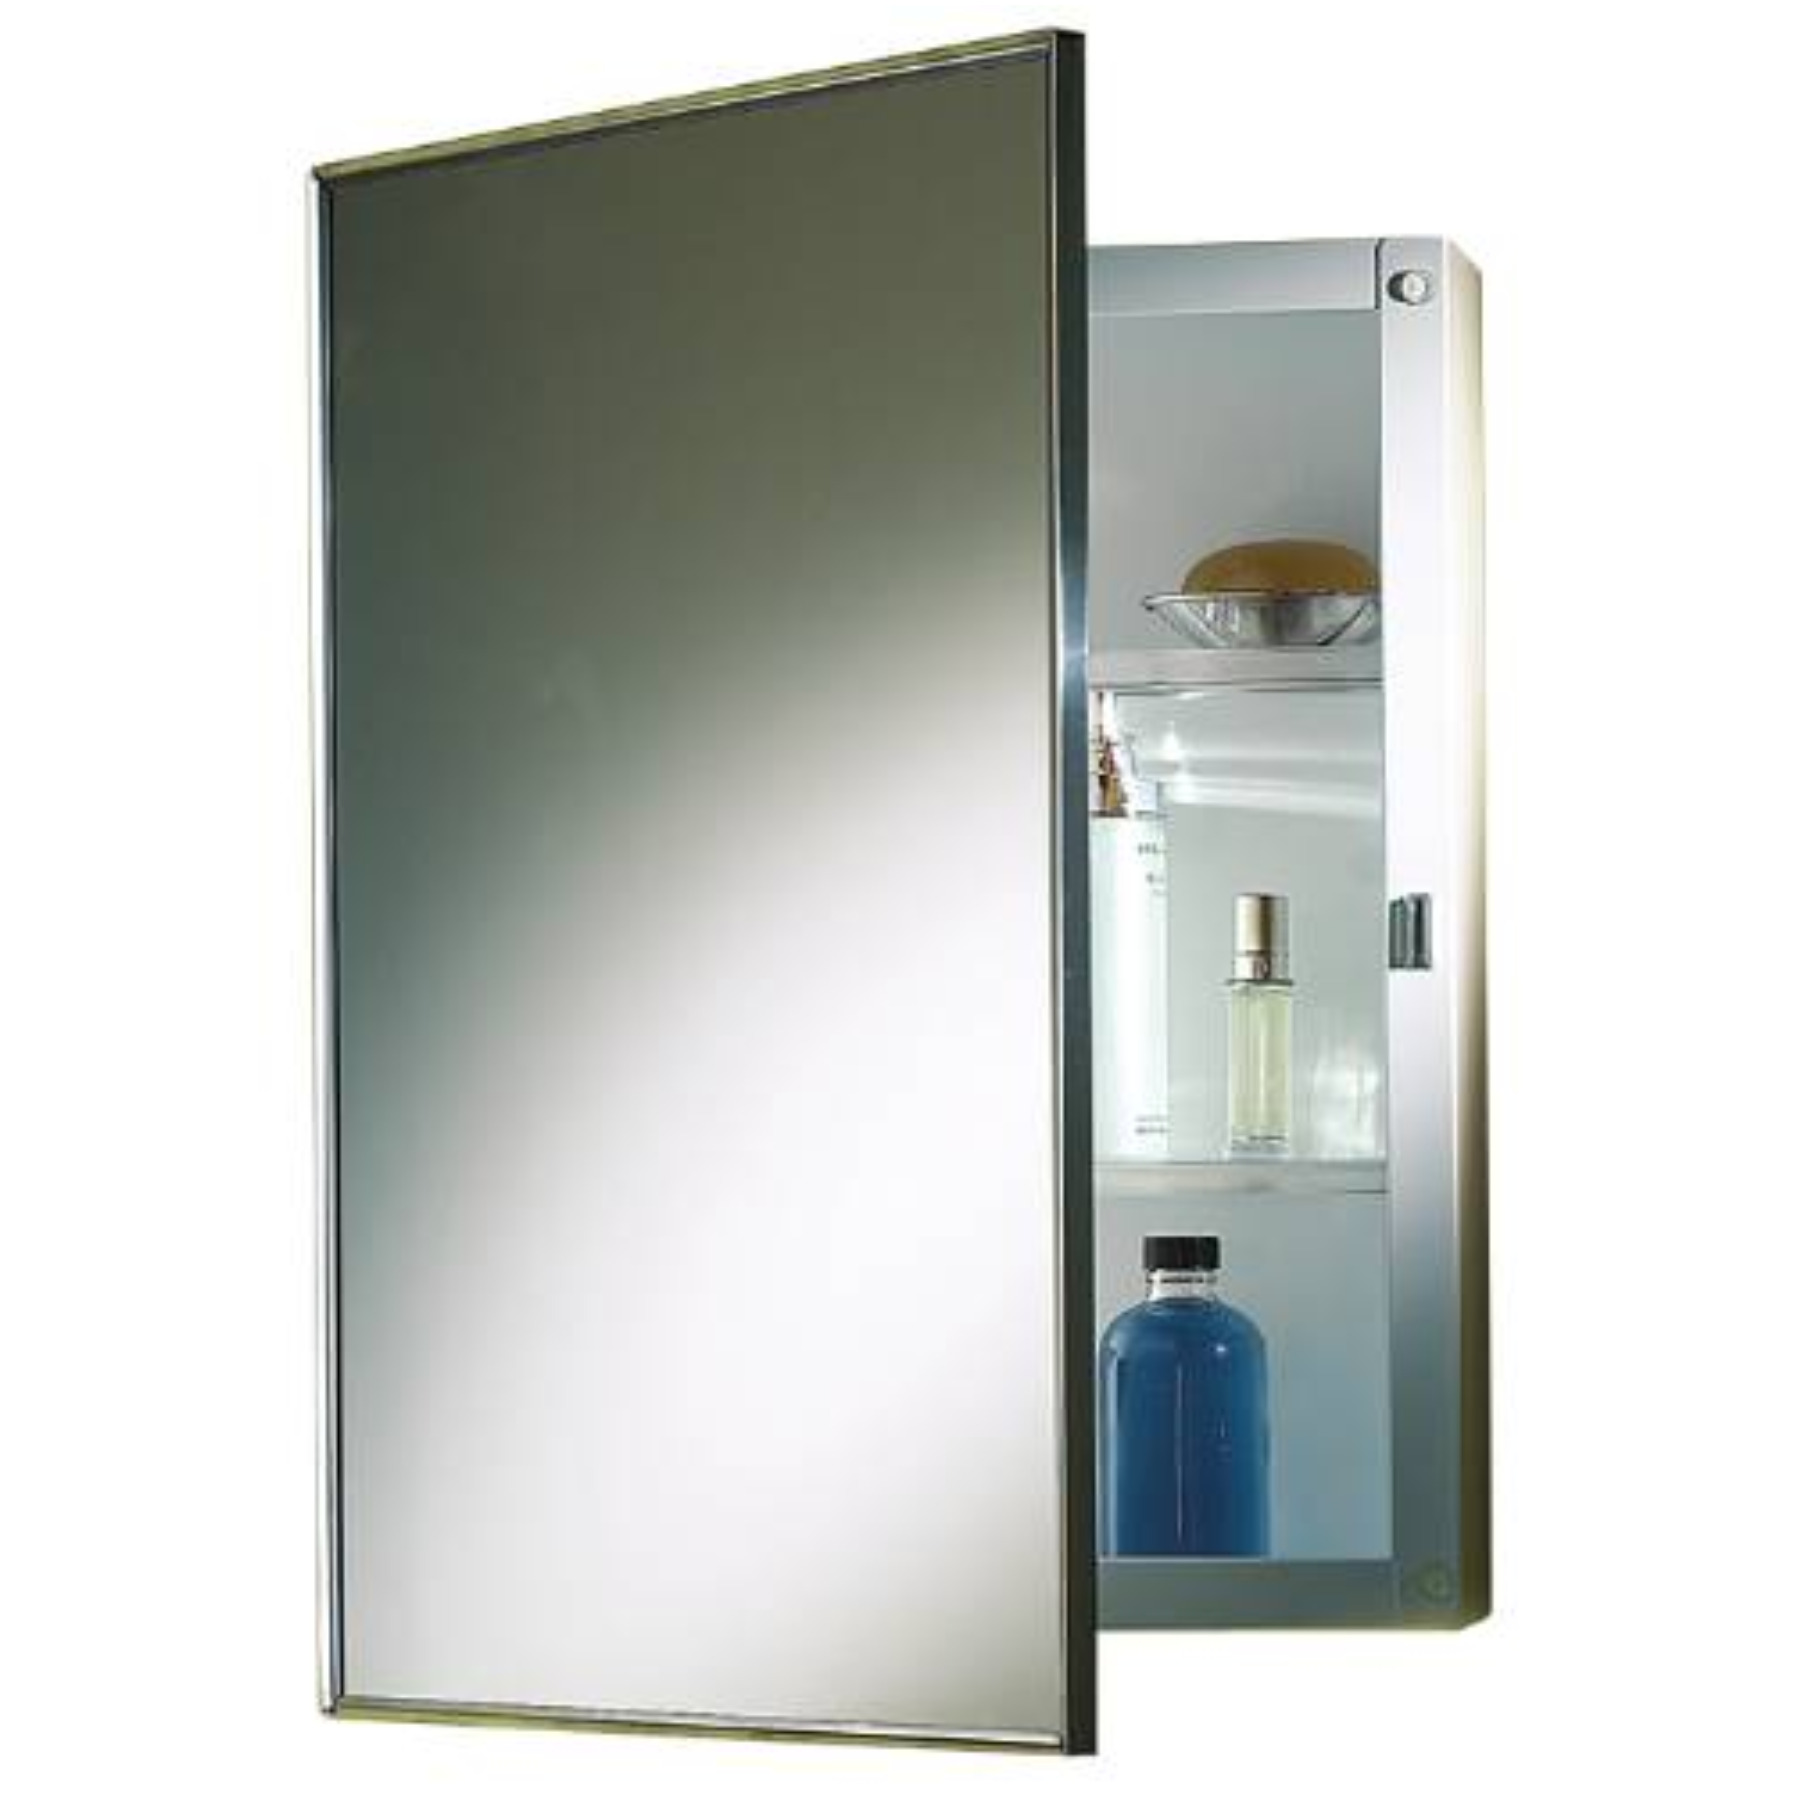 NUTONE� RECESSED SWING-DOOR MEDICINE CABINET, 16 IN. X 22 IN., POLISHED STAINLESS STEEL FRAME